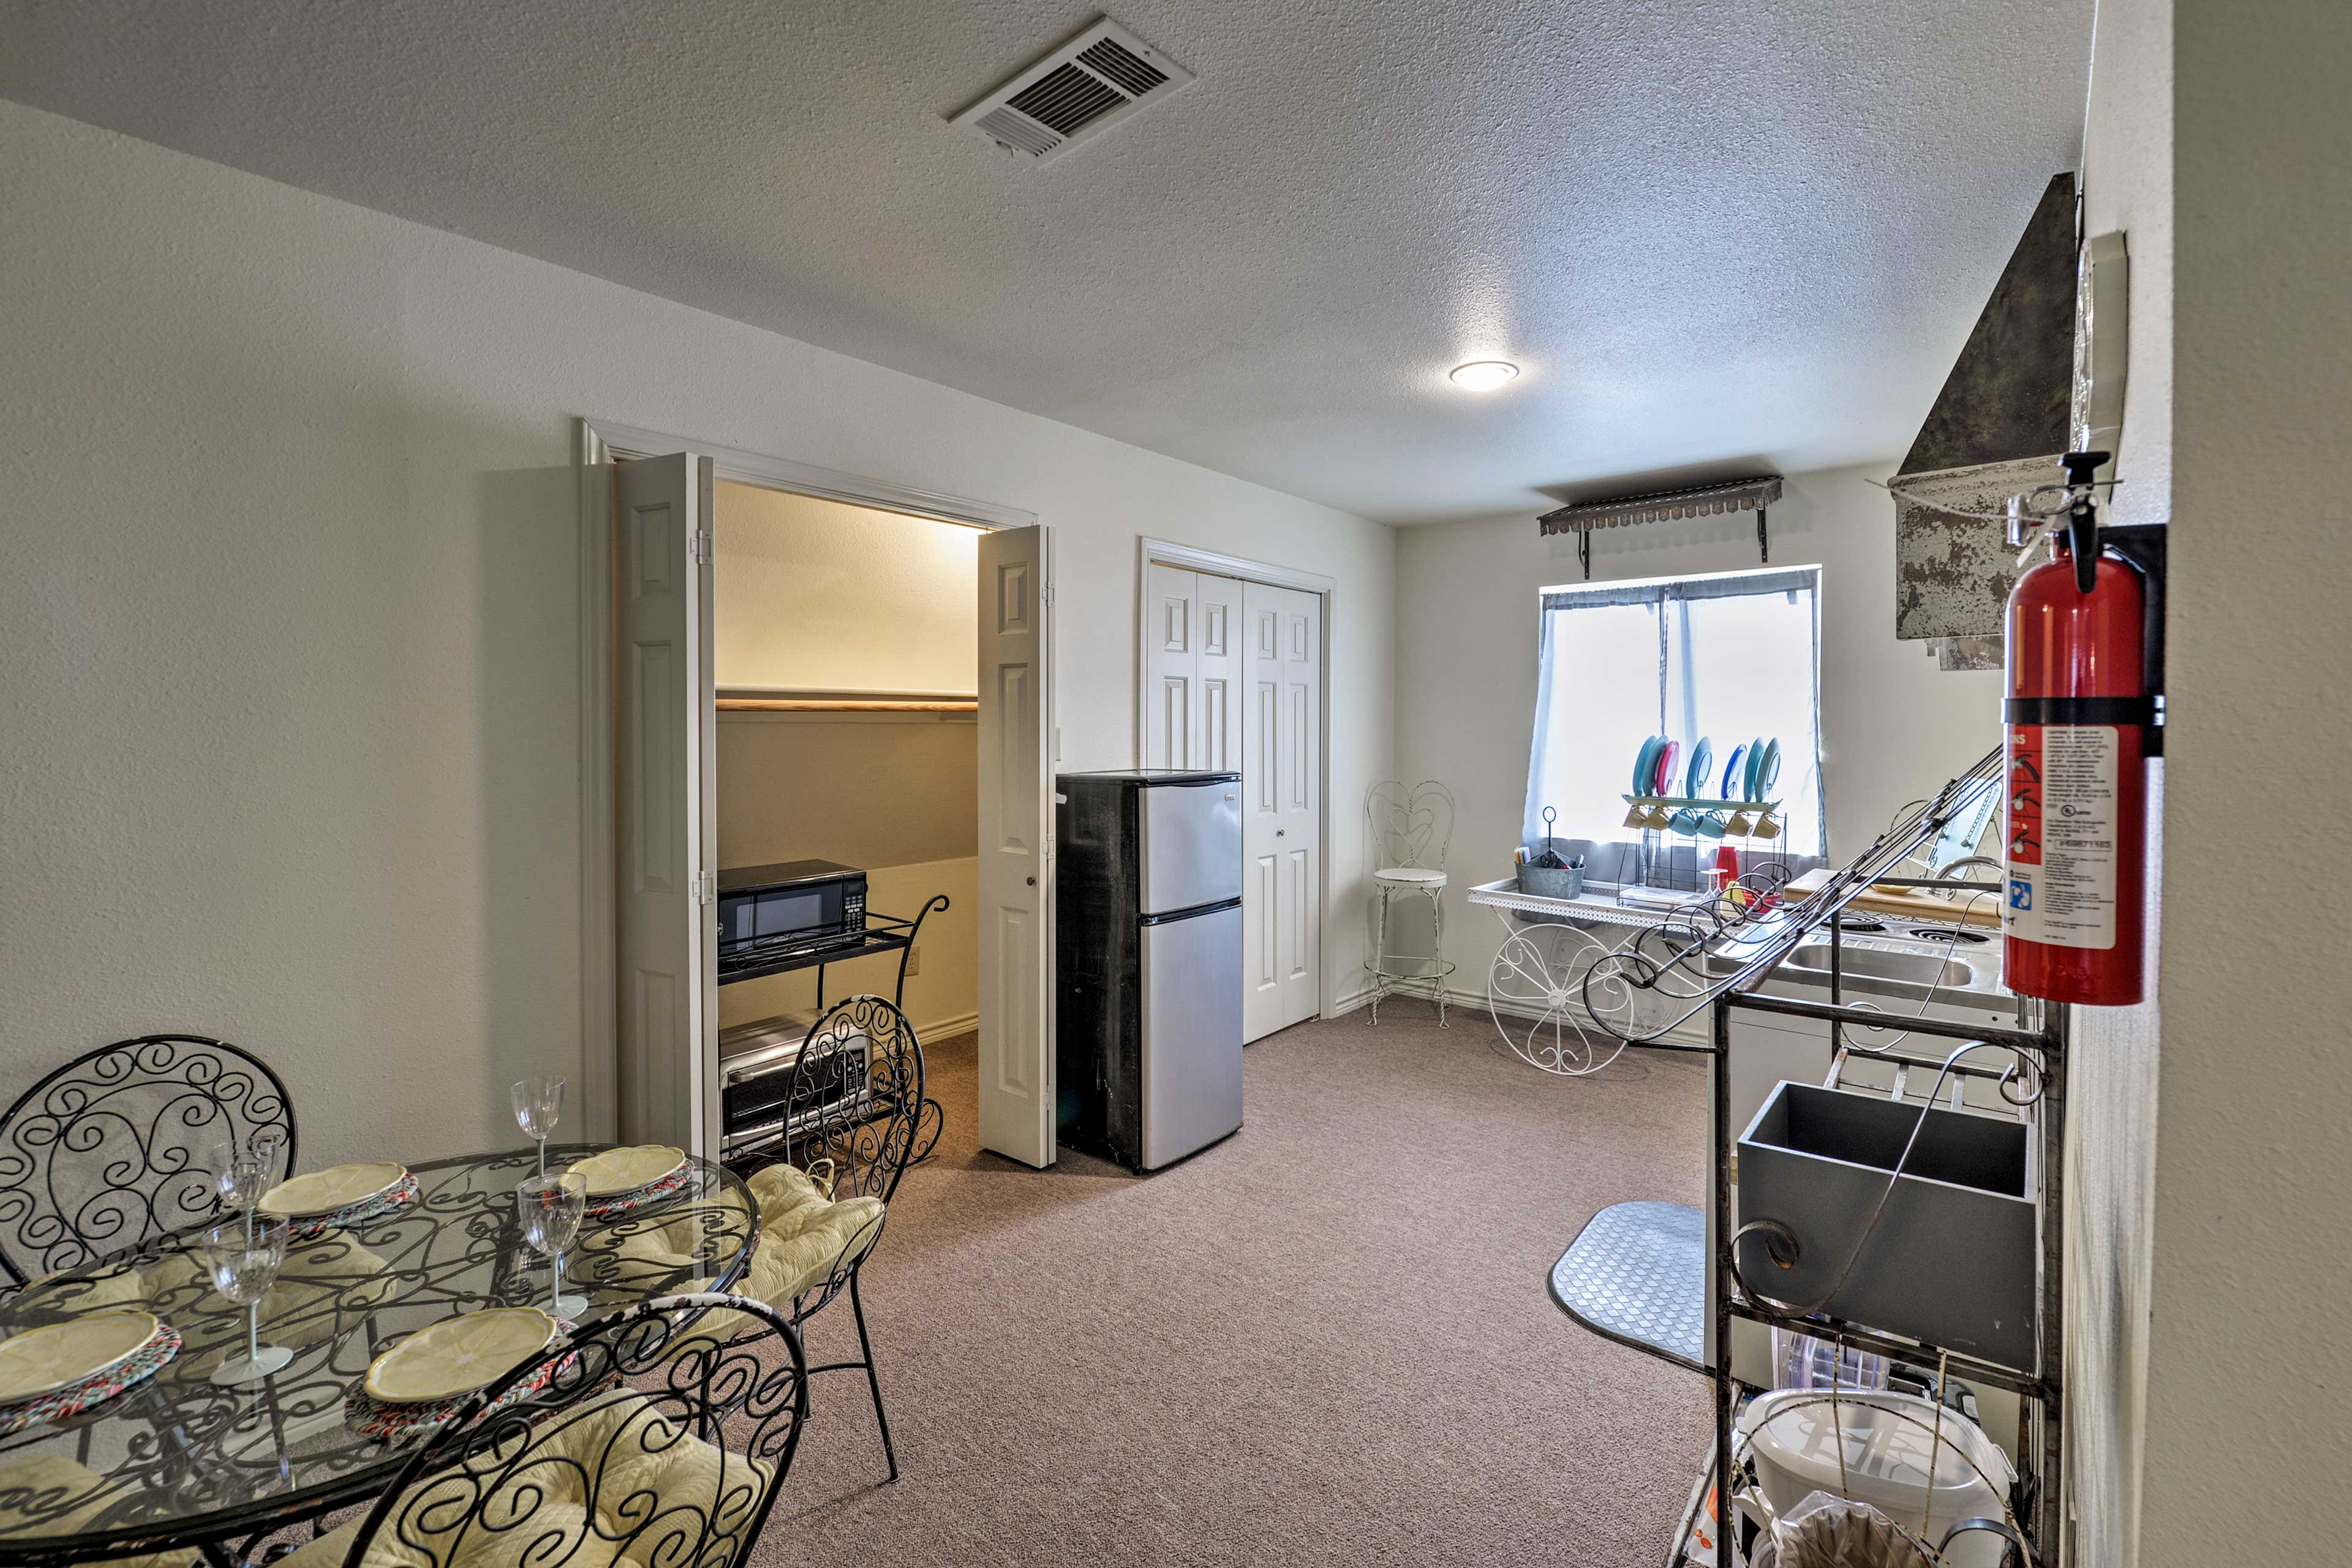 This space also hosts a kitchenette.